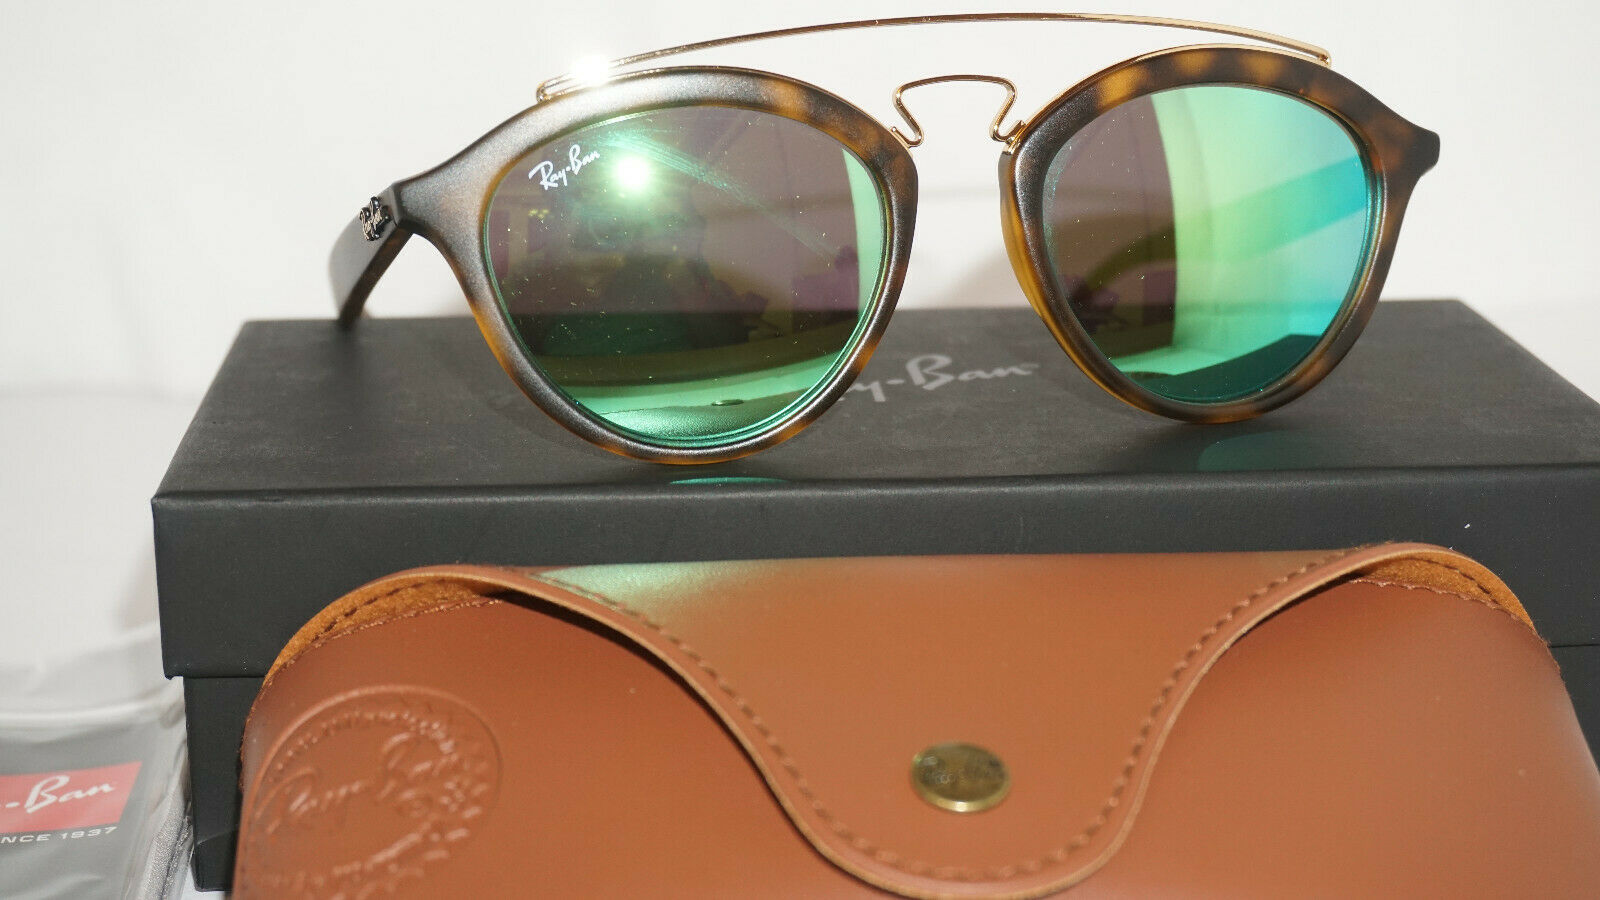 474bdcc99a ... EAN 8053672584363 product image for Ray Ban Sunglasses Gatsby Tortoise green  Mirror Rb4257 60923r 50